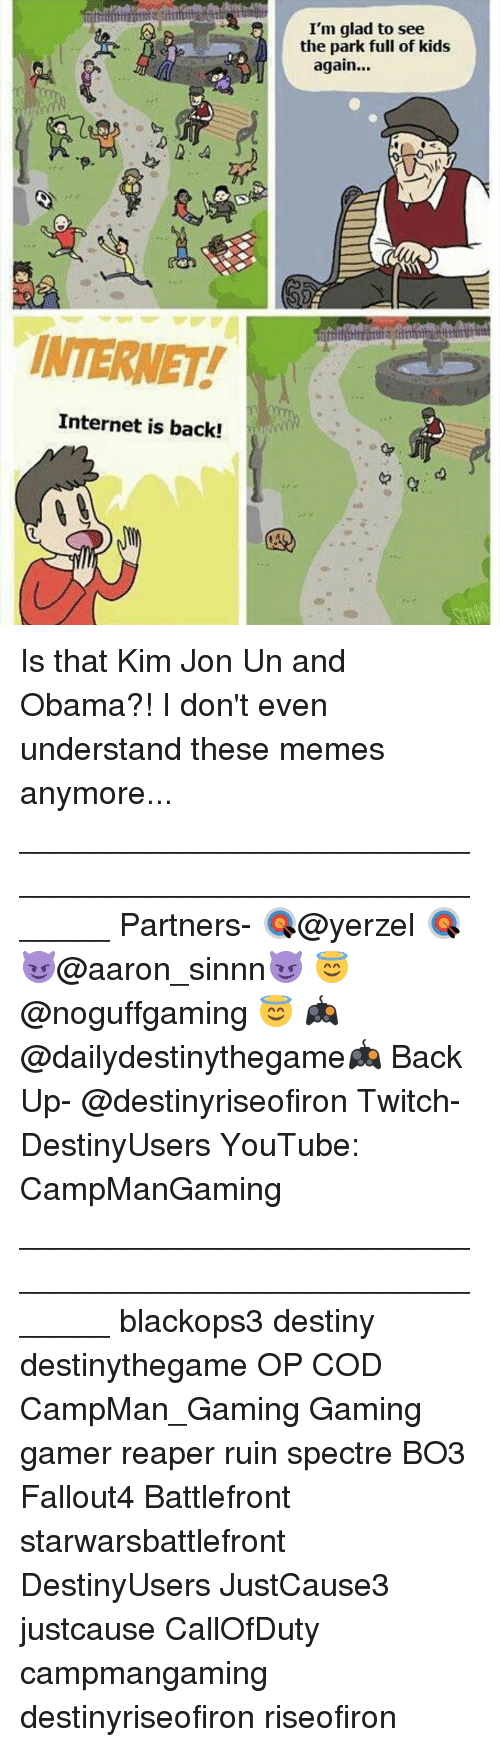 Memes, Battlefront, and 🤖: INTERNET!  Internet is back!  I'm glad to see  the park full of kids  again... Is that Kim Jon Un and Obama?! I don't even understand these memes anymore... _______________________________________________________ Partners- 🎯@yerzel 🎯 😈@aaron_sinnn😈 😇@noguffgaming 😇 🎮@dailydestinythegame🎮 Back Up- @destinyriseofiron Twitch- DestinyUsers YouTube: CampManGaming _______________________________________________________ blackops3 destiny destinythegame OP COD CampMan_Gaming Gaming gamer reaper ruin spectre BO3 Fallout4 Battlefront starwarsbattlefront DestinyUsers JustCause3 justcause CallOfDuty campmangaming destinyriseofiron riseofiron